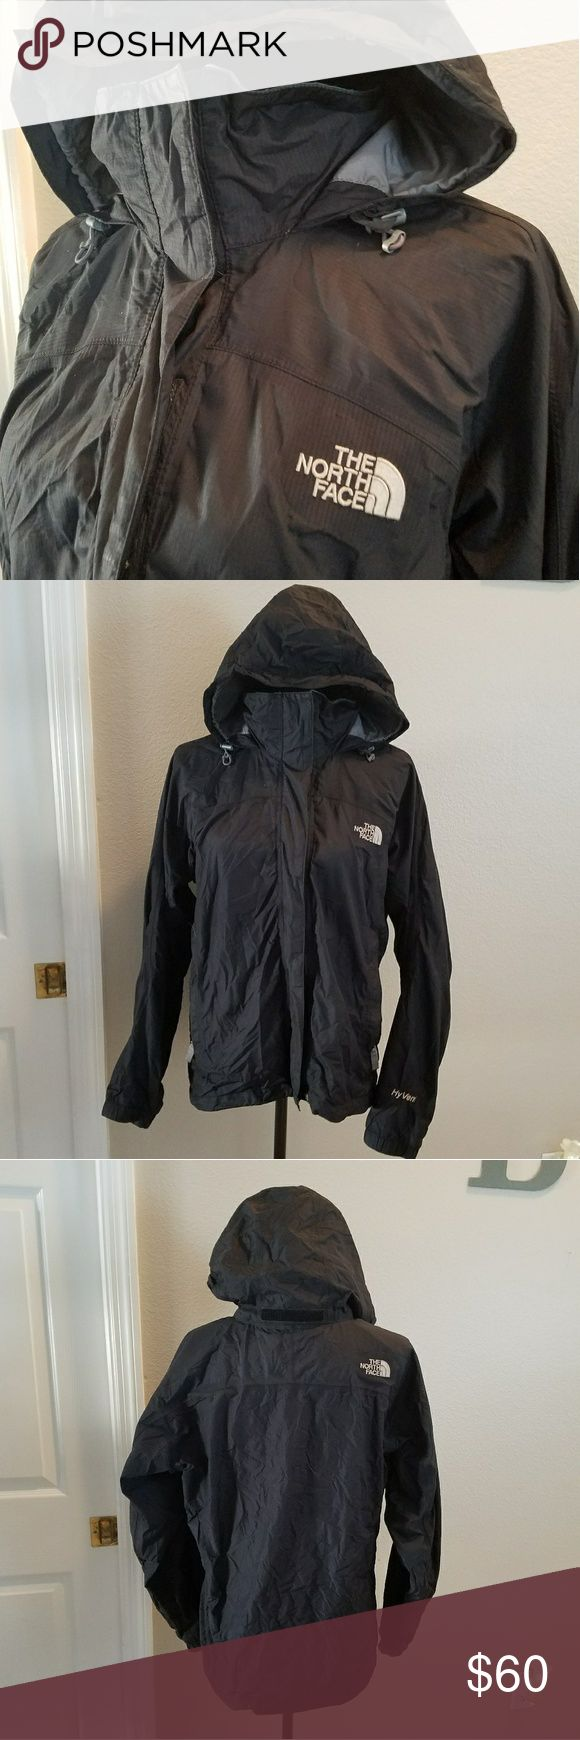 NORTH FACE BLACK RAIN COAT SIZE MED Black RAINCOAT. Size medium. In great condition, some lint present in inside Velcro shown in pic. The hood can be folded under collar as shown above. Tightening strings on the hood.  Has a zipper and Velcro. Has 2 pockets. The North Face Jackets & Coats